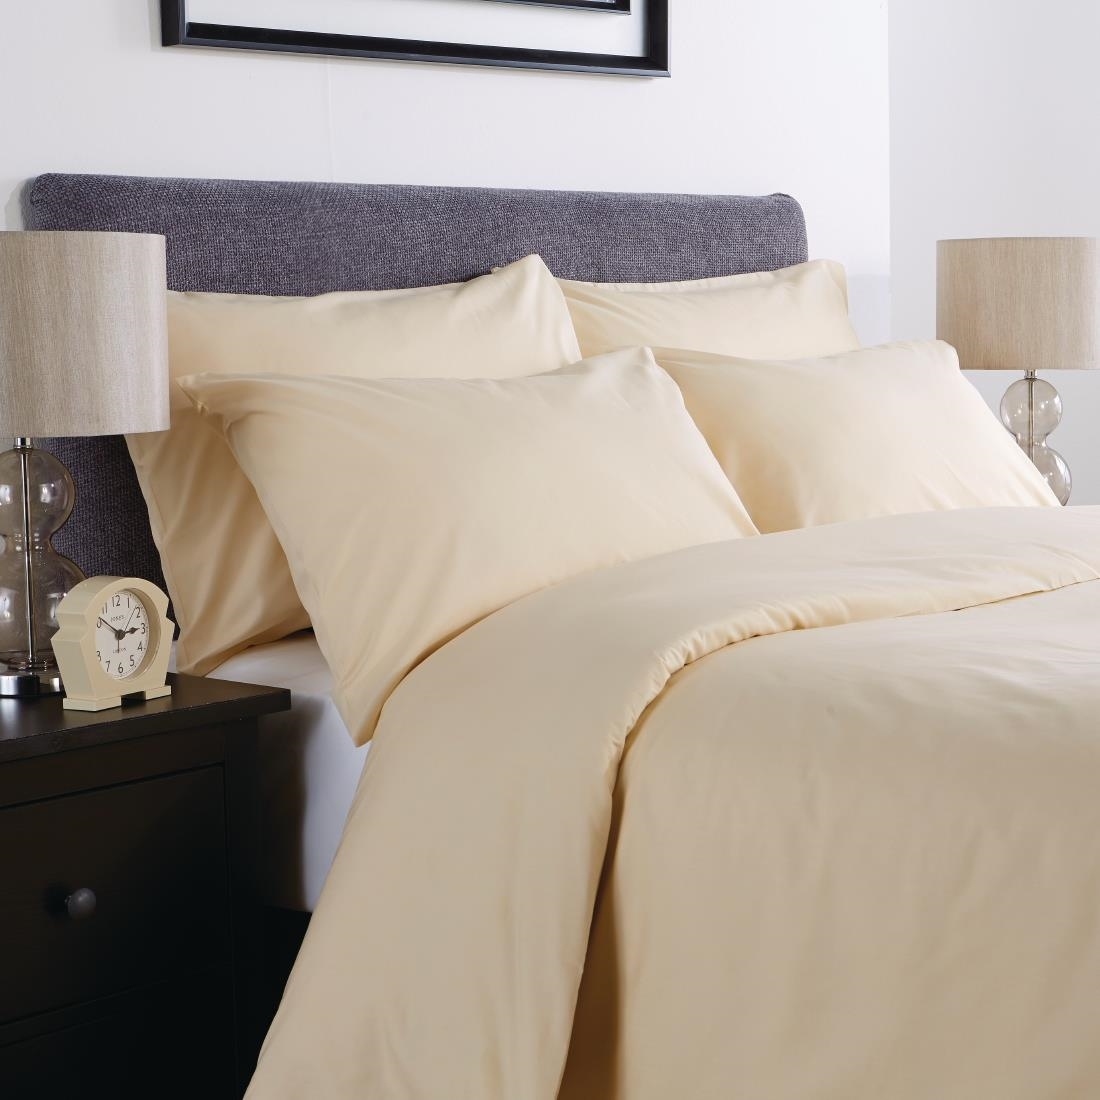 Image of Mitre Comfort Percale Duvet Cover Oatmeal King Size